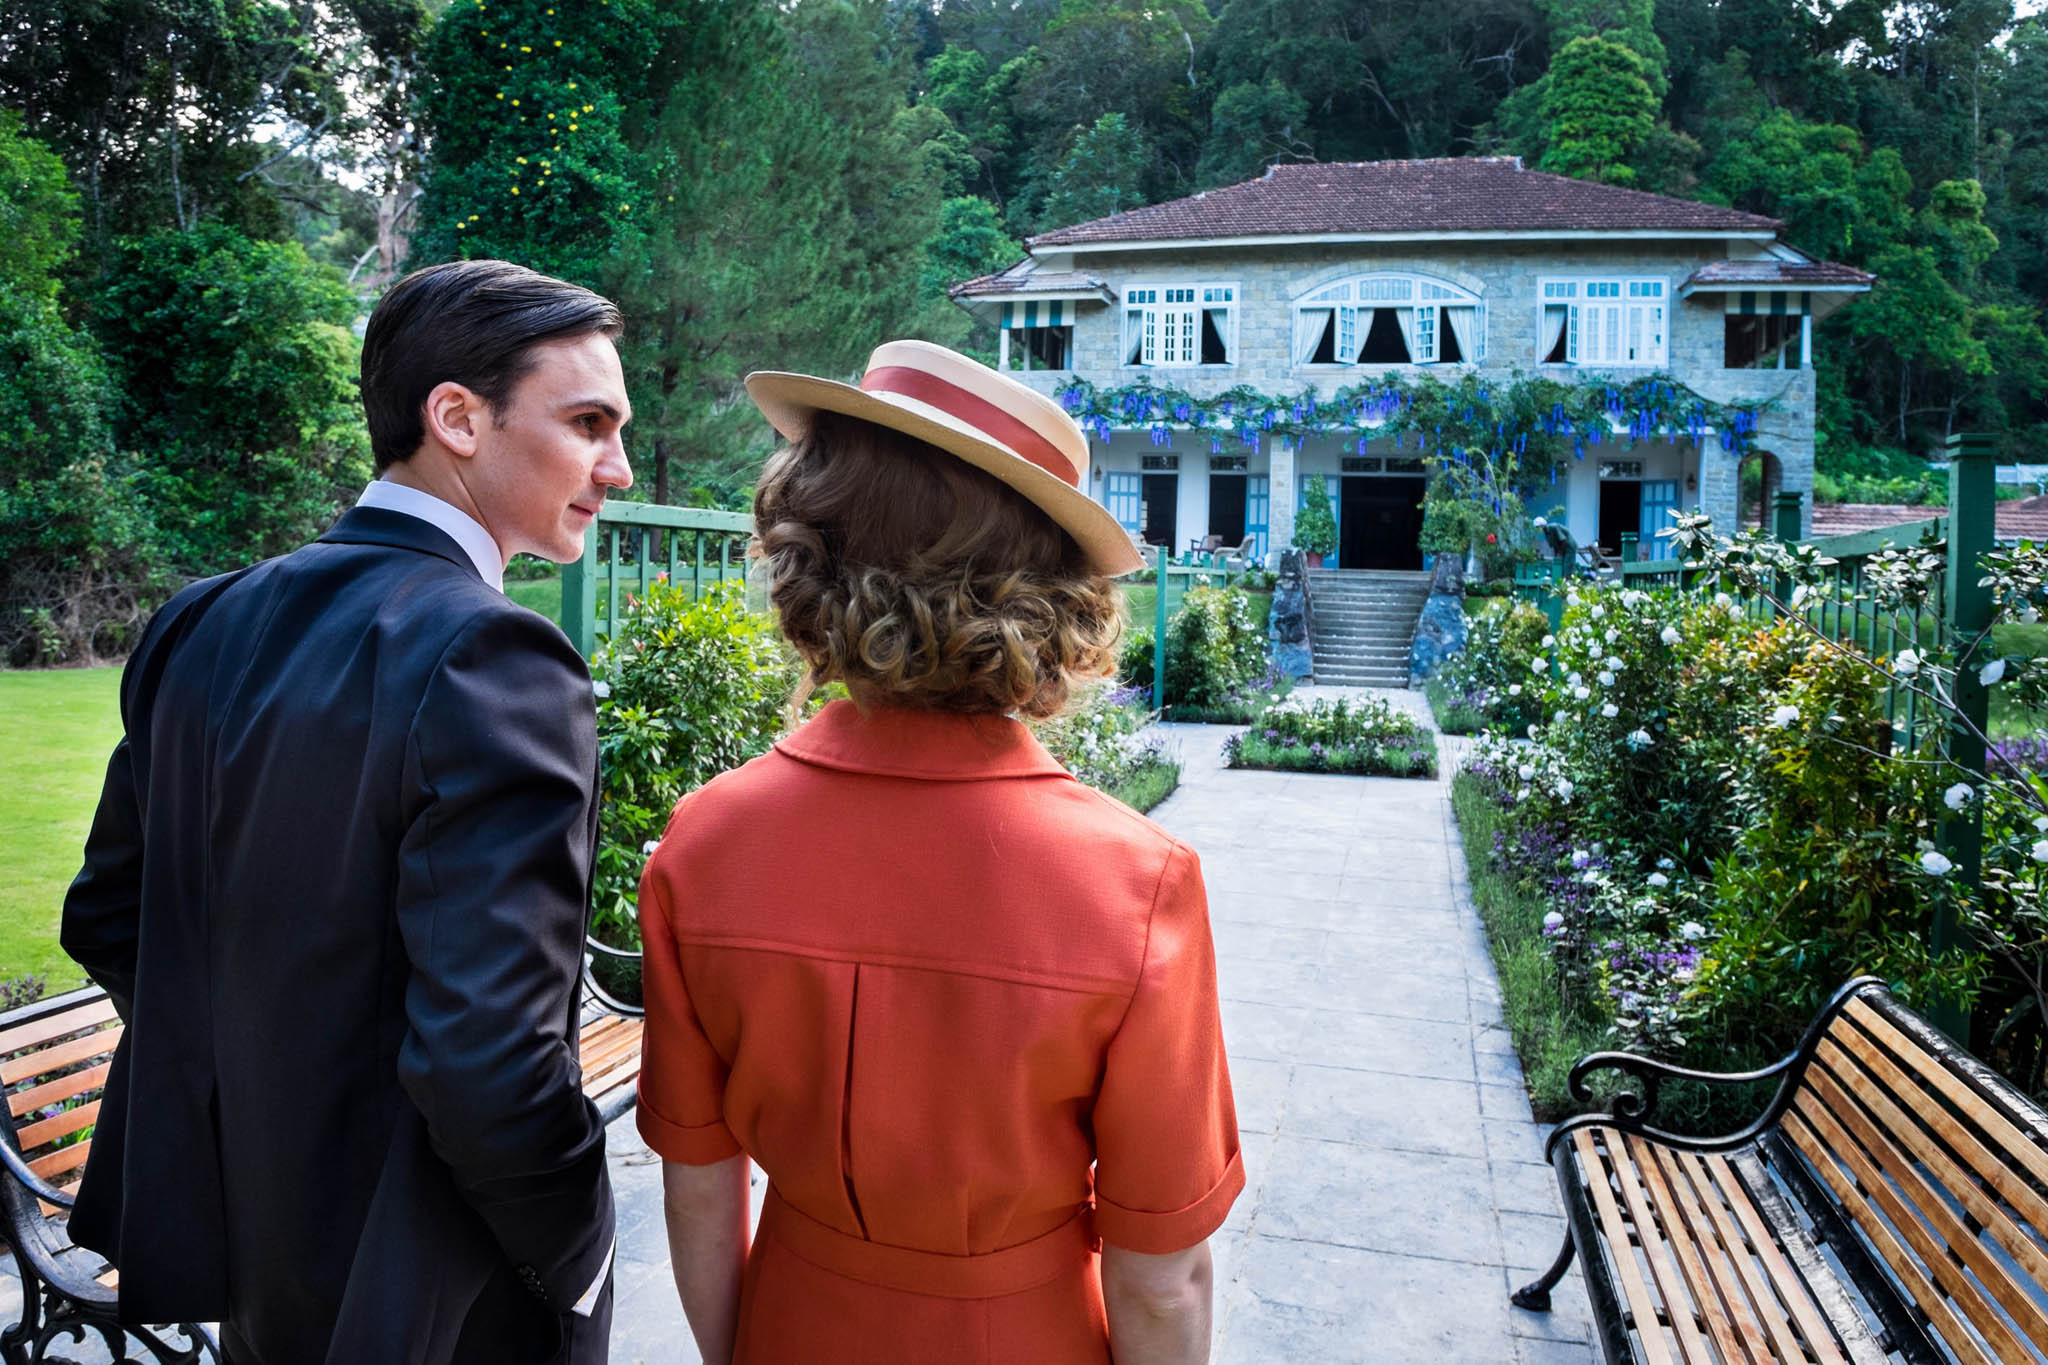 Indian Summers  Why Channel       s Sunday night drama is better than     Indian Summers  Why Channel       s Sunday night drama is better than Downton Abbey   The Independent